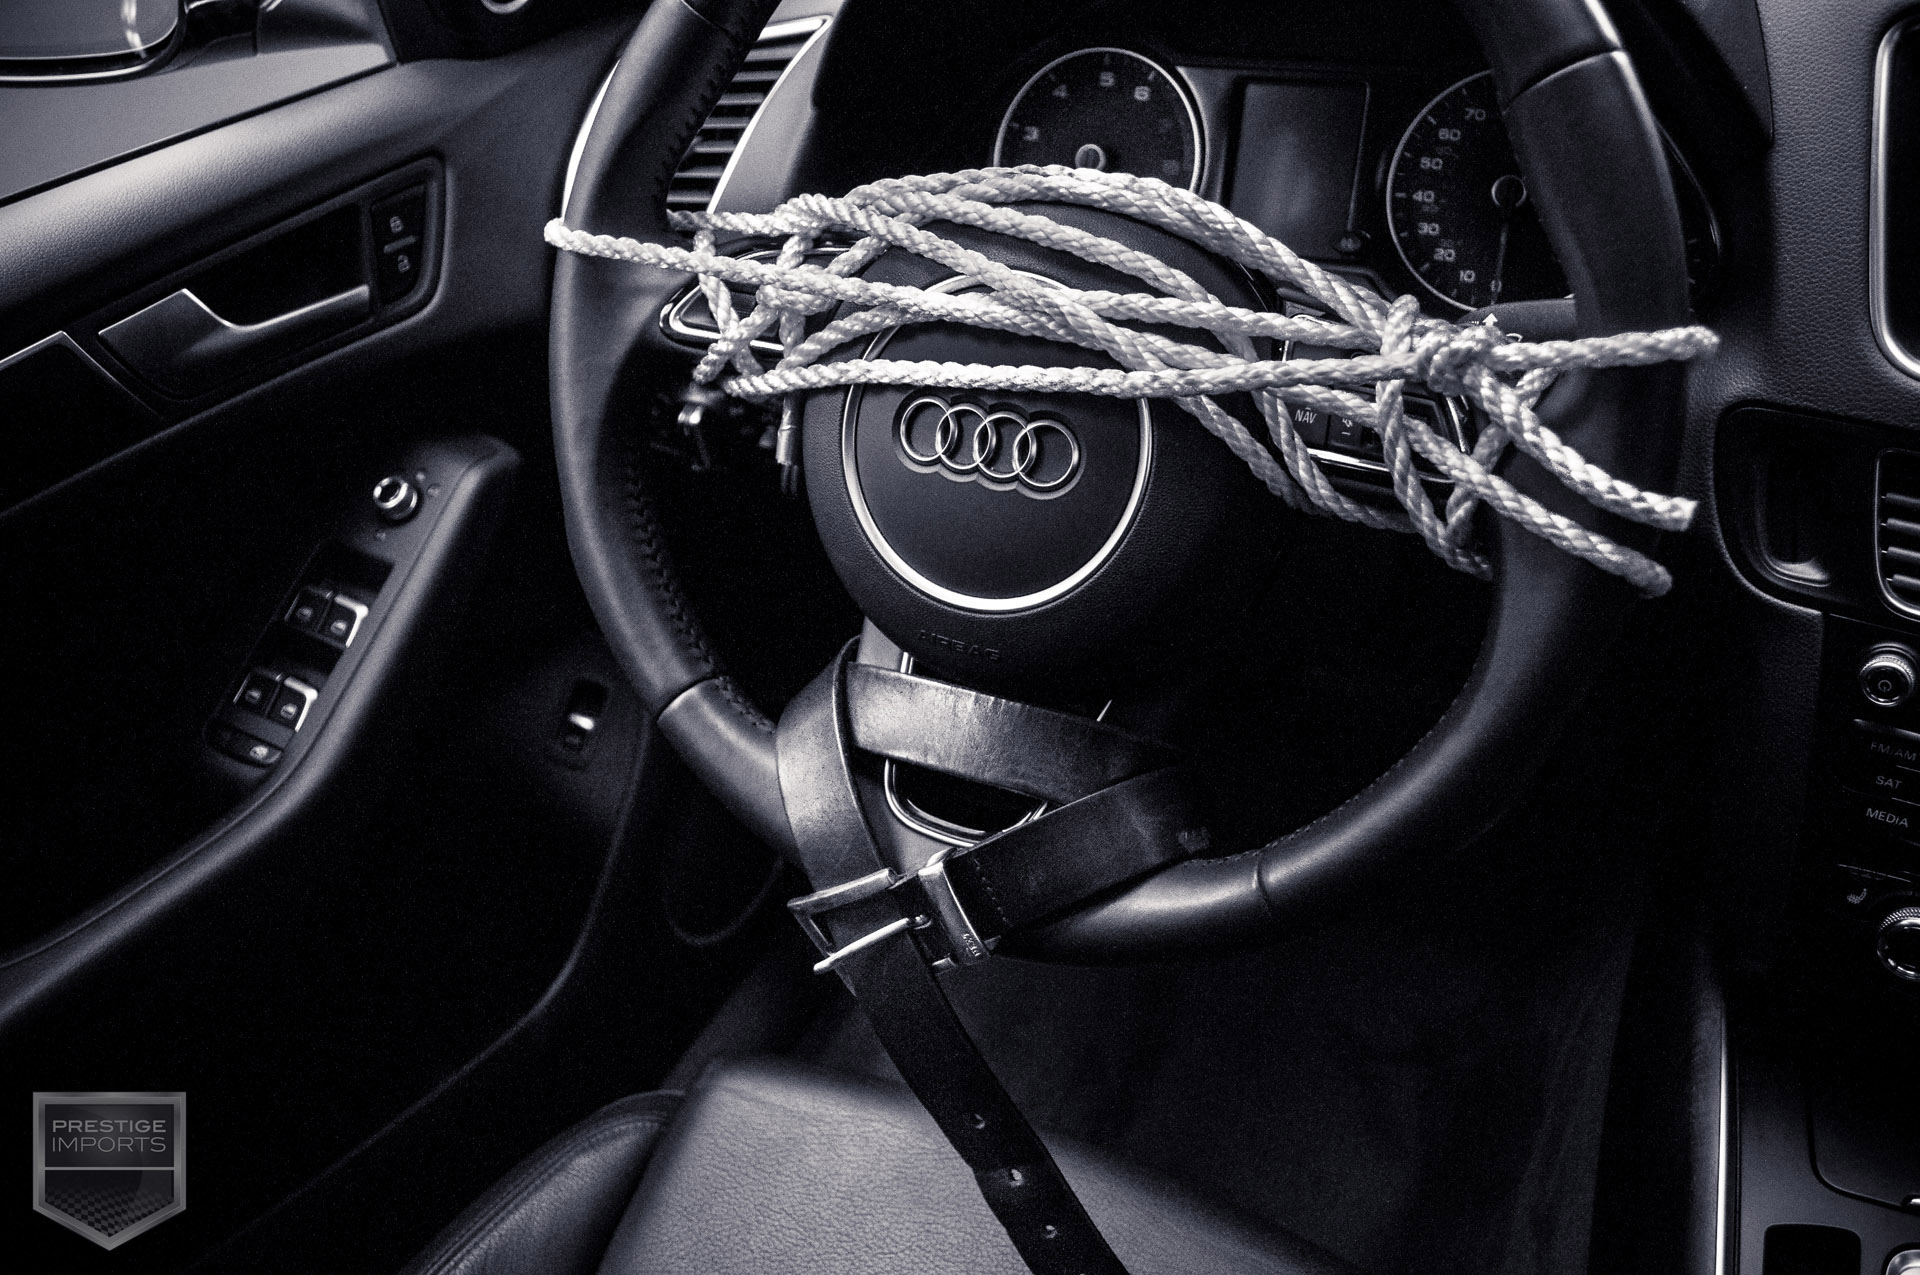 Fifty Shades Of Grey And Audi A Tantalizing Combination - Audi car in 50 shades of grey